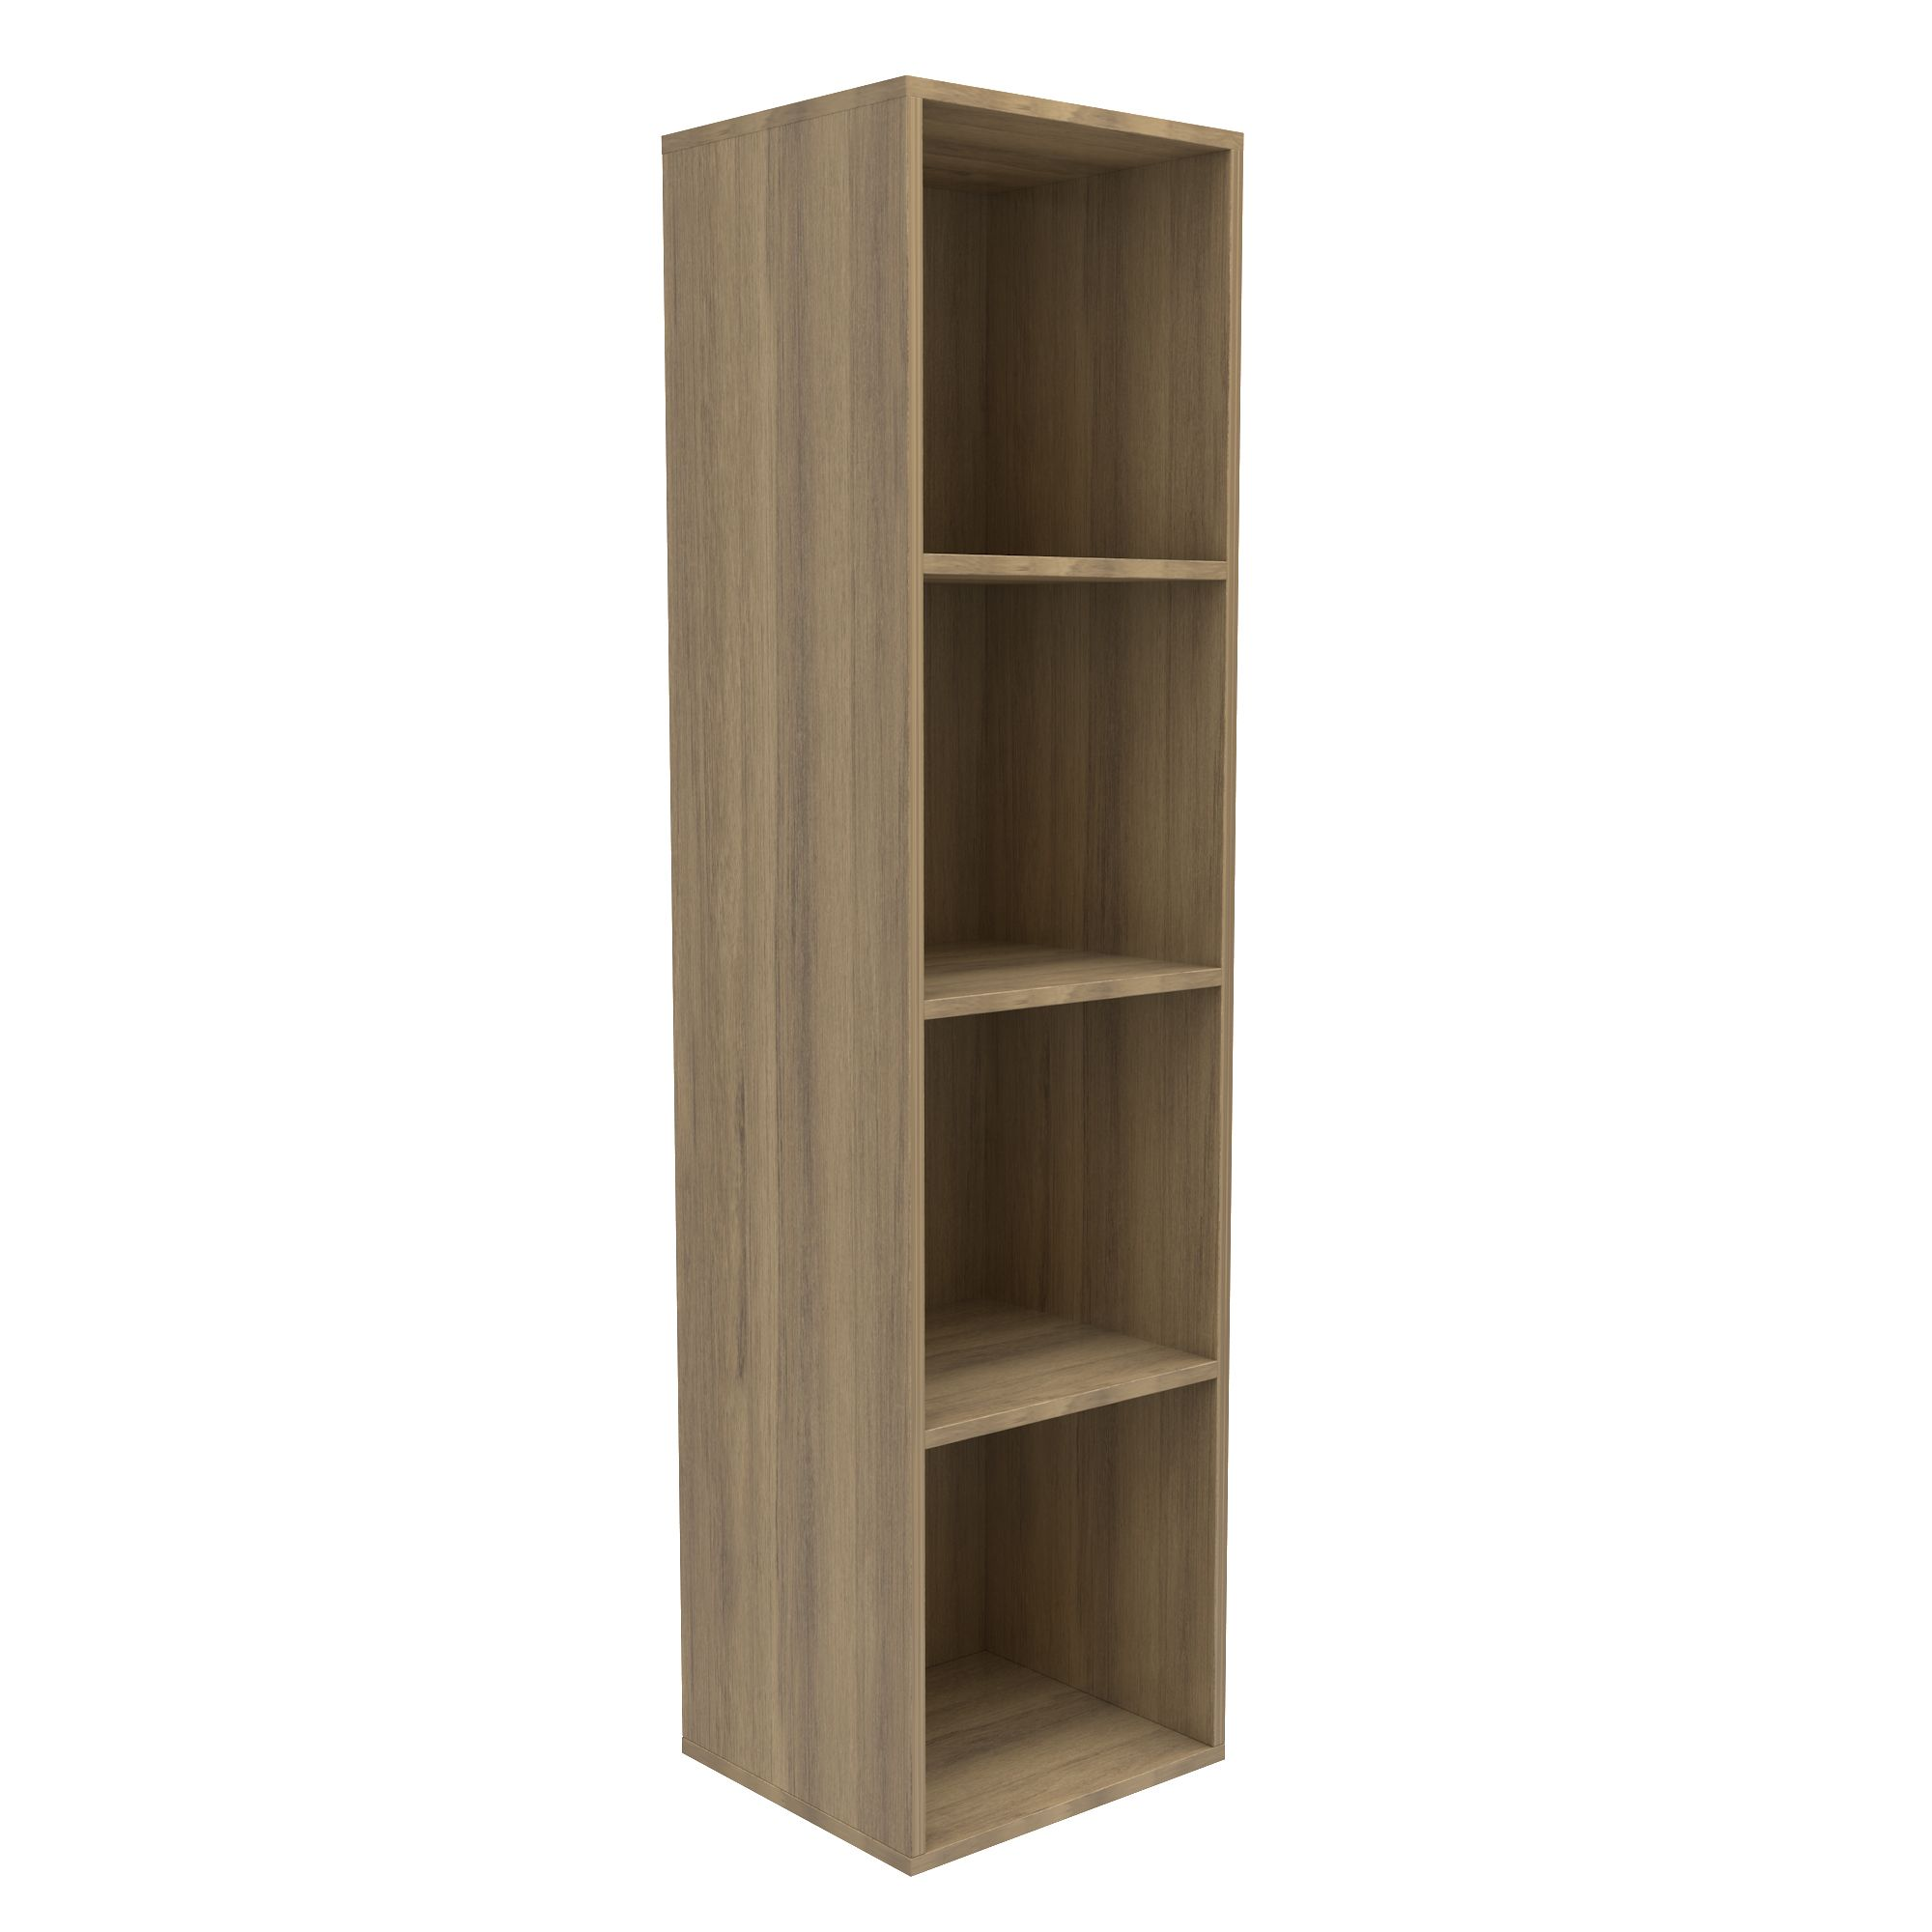 com shelving cubes ideas cube modern freshouz shelf design pin and